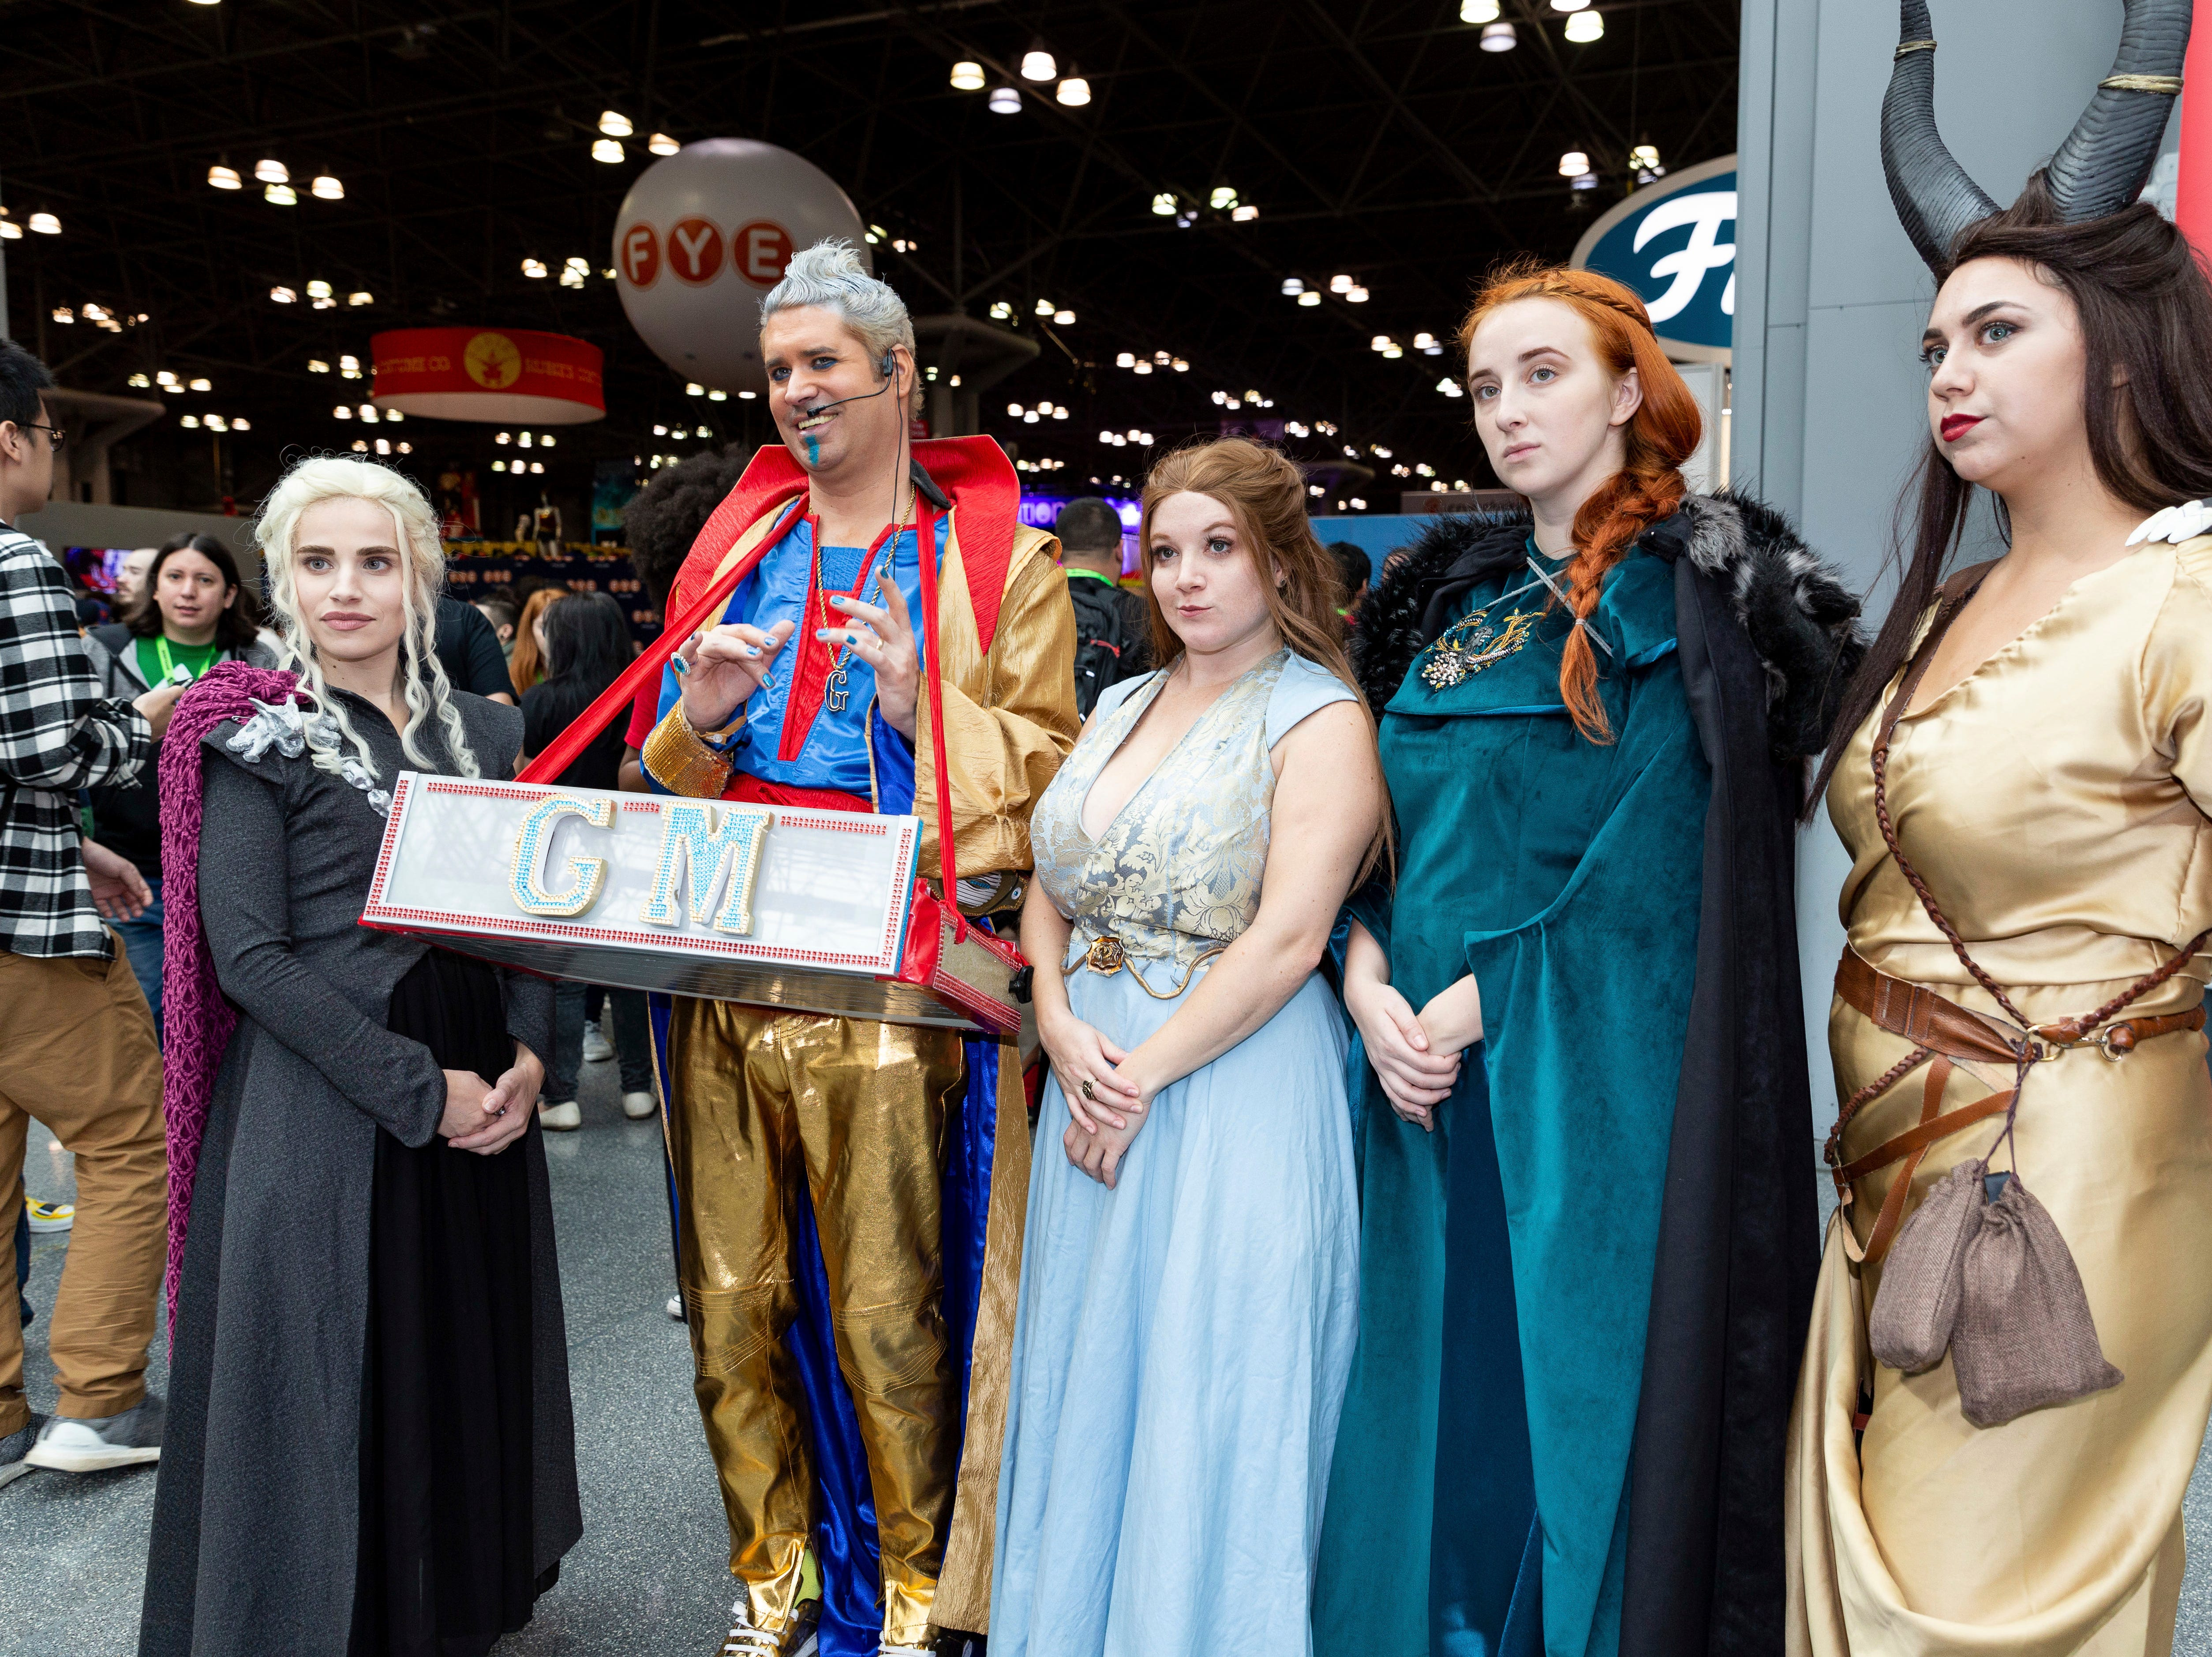 Attendees dressed in costume pose for a photo during the first day of New York Comic Con, Thursday, Oct. 4, 2018. (AP Photo/Steve Luciano)